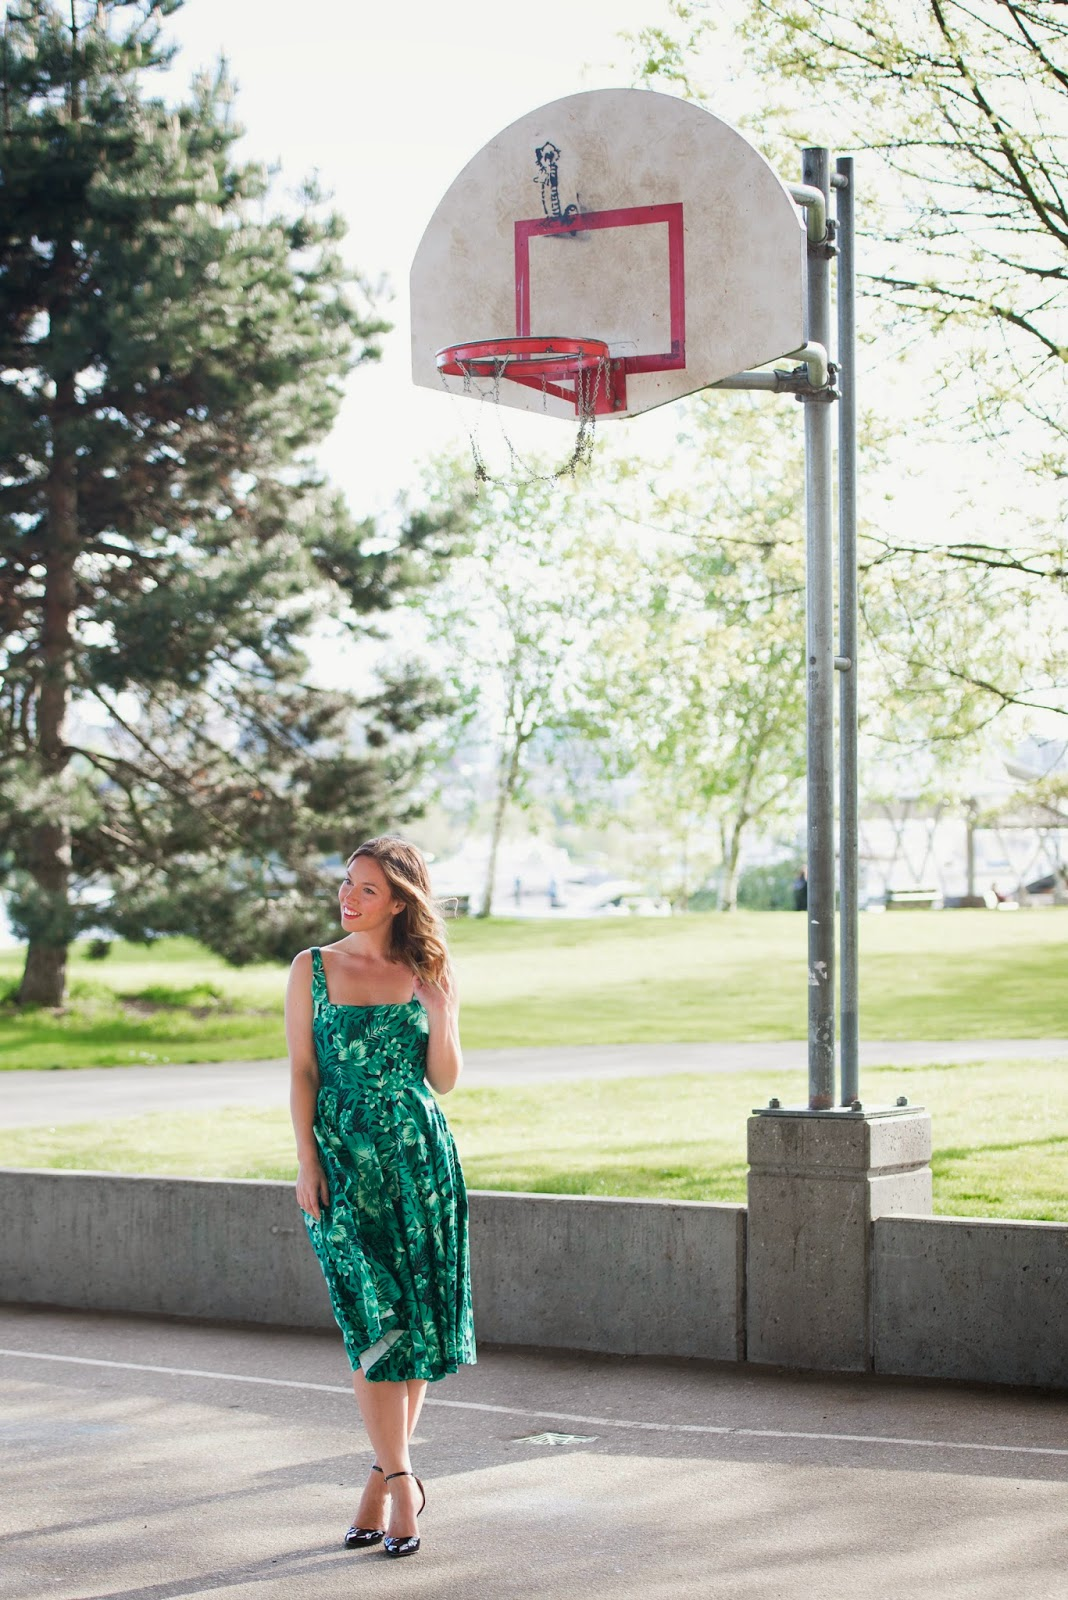 to vogue or bust, vancouver style blog, vancouver fashion blog, canadian fashion blog, zara tropical green printed dress, sole society heels, christie graham photography, bleed for fashion, glitter guide, tonal dressing, best style blog, best fashion blog, top vancouver blog